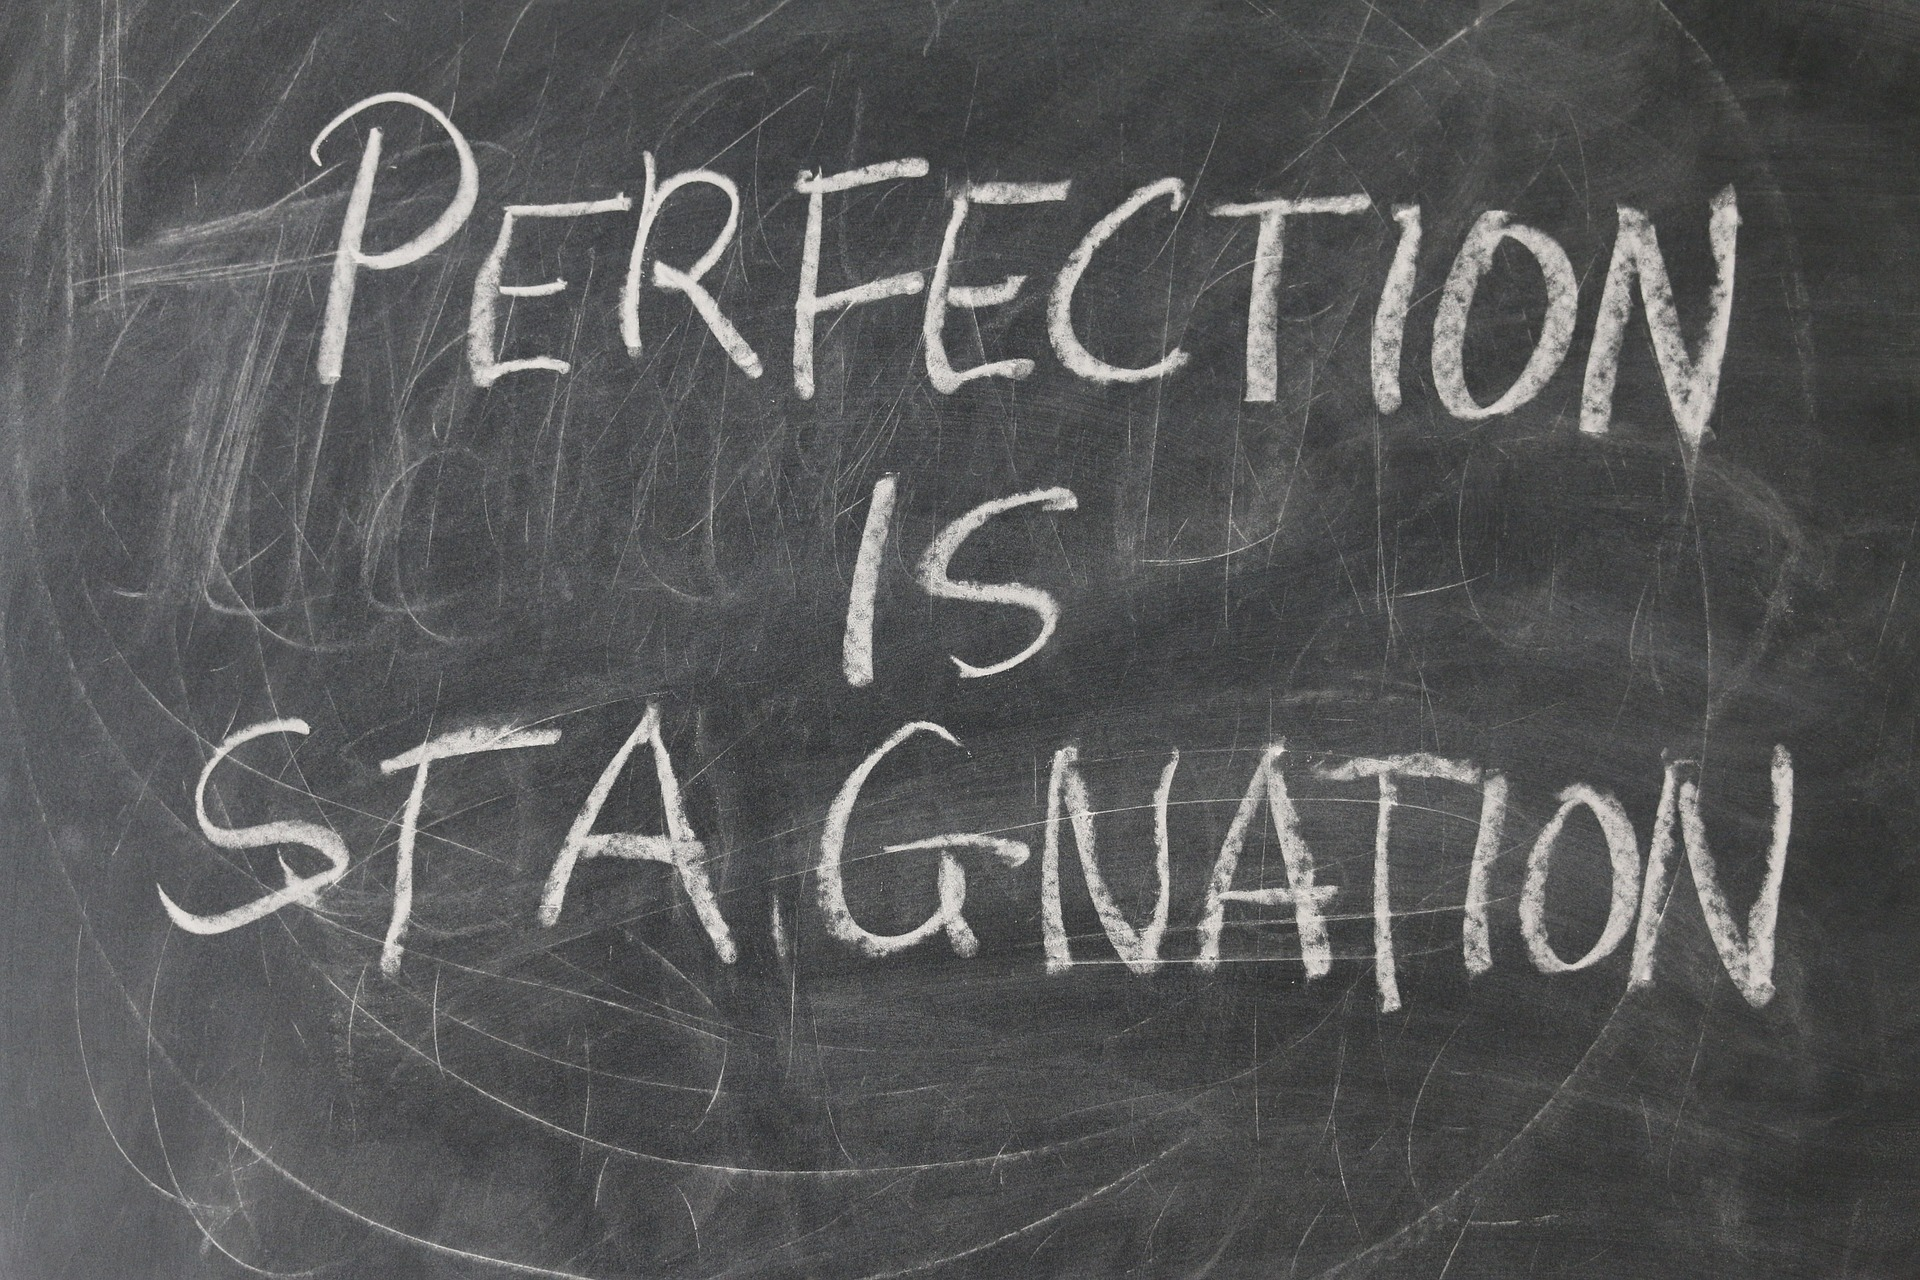 Perfection is stagnation Wallpaper